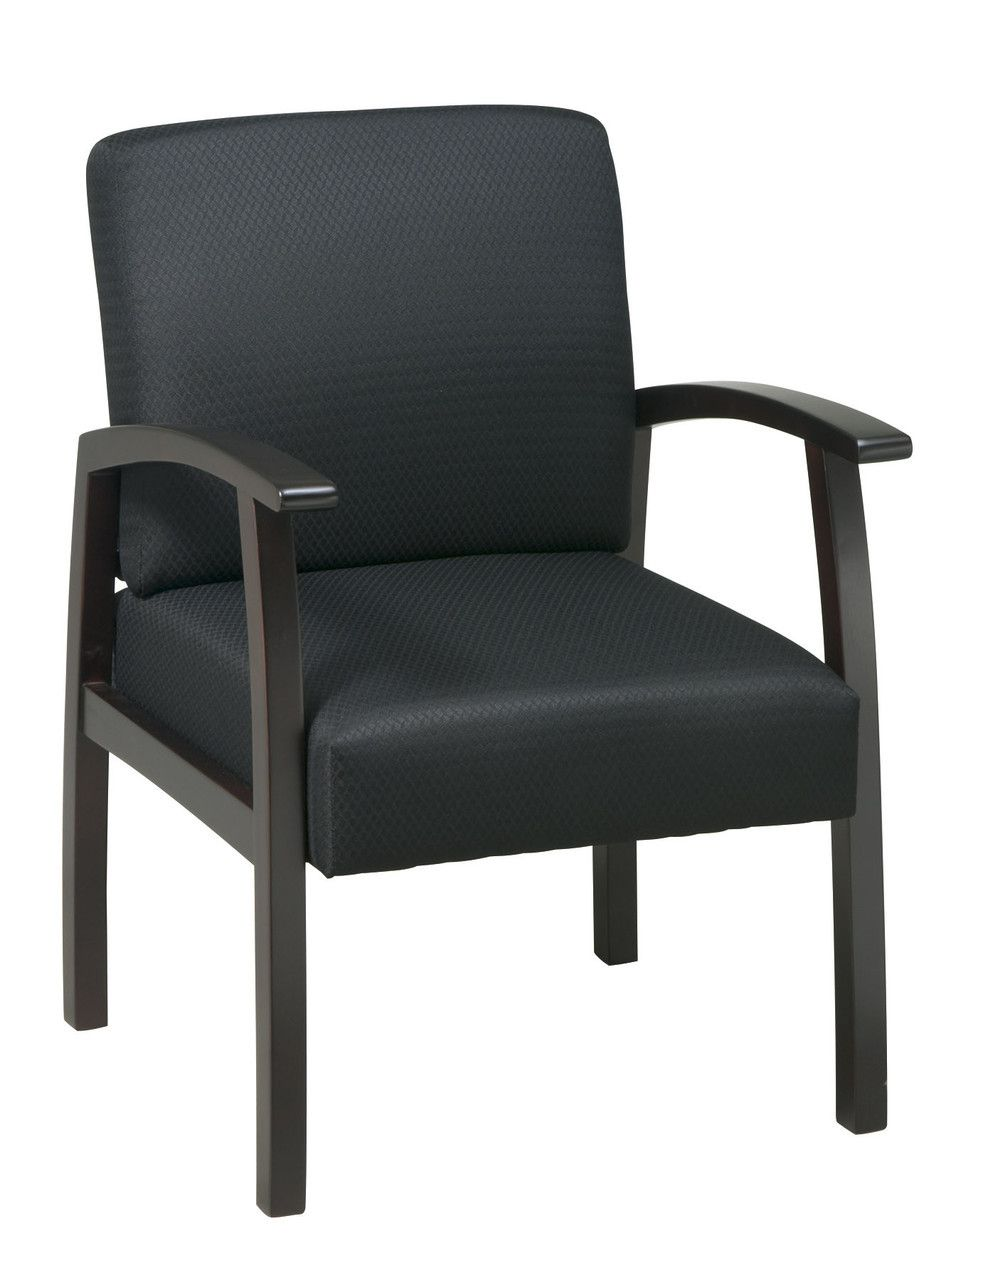 Office star deluxe espresso finish guest chair black triangle fabric wd1358 363